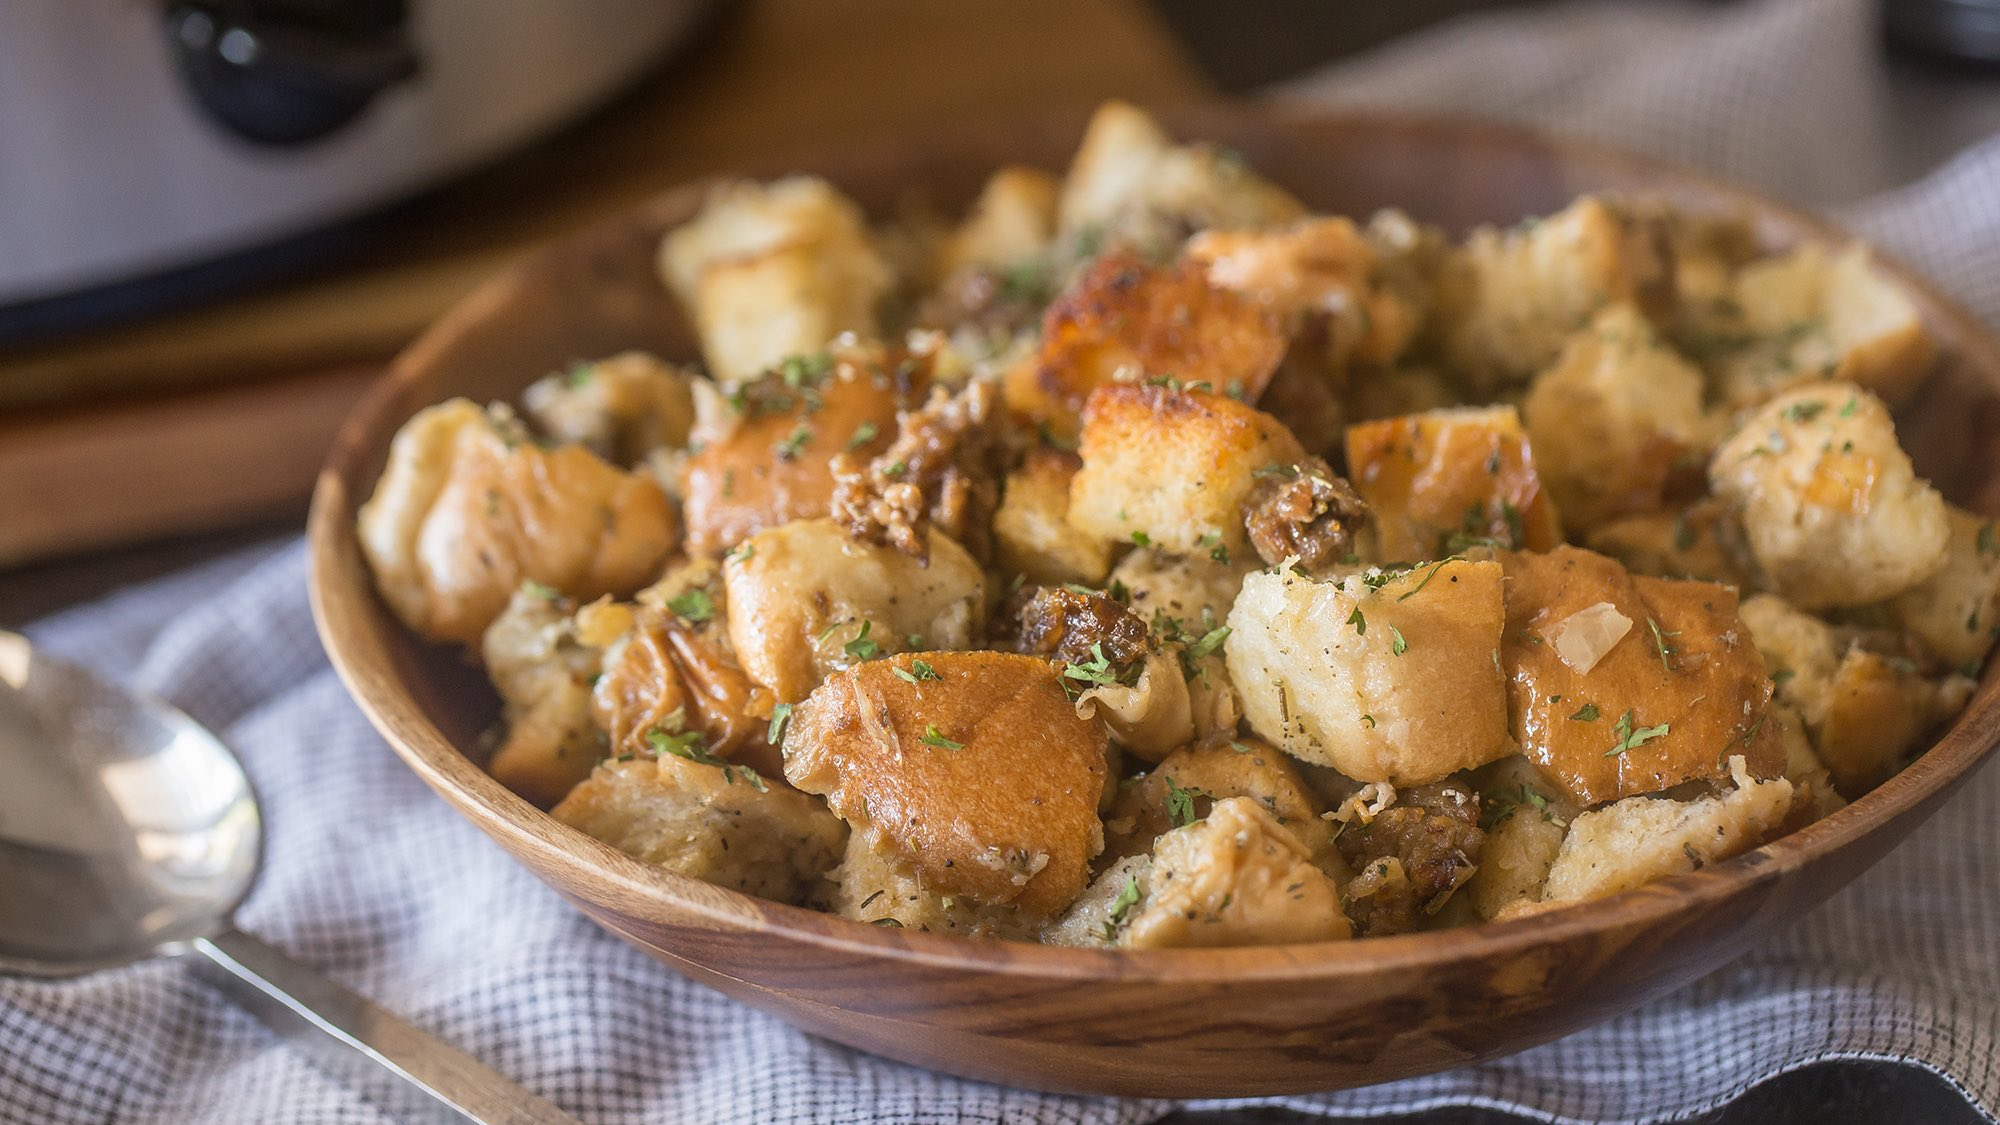 McCormick Slow Cooker Sausage Stuffing